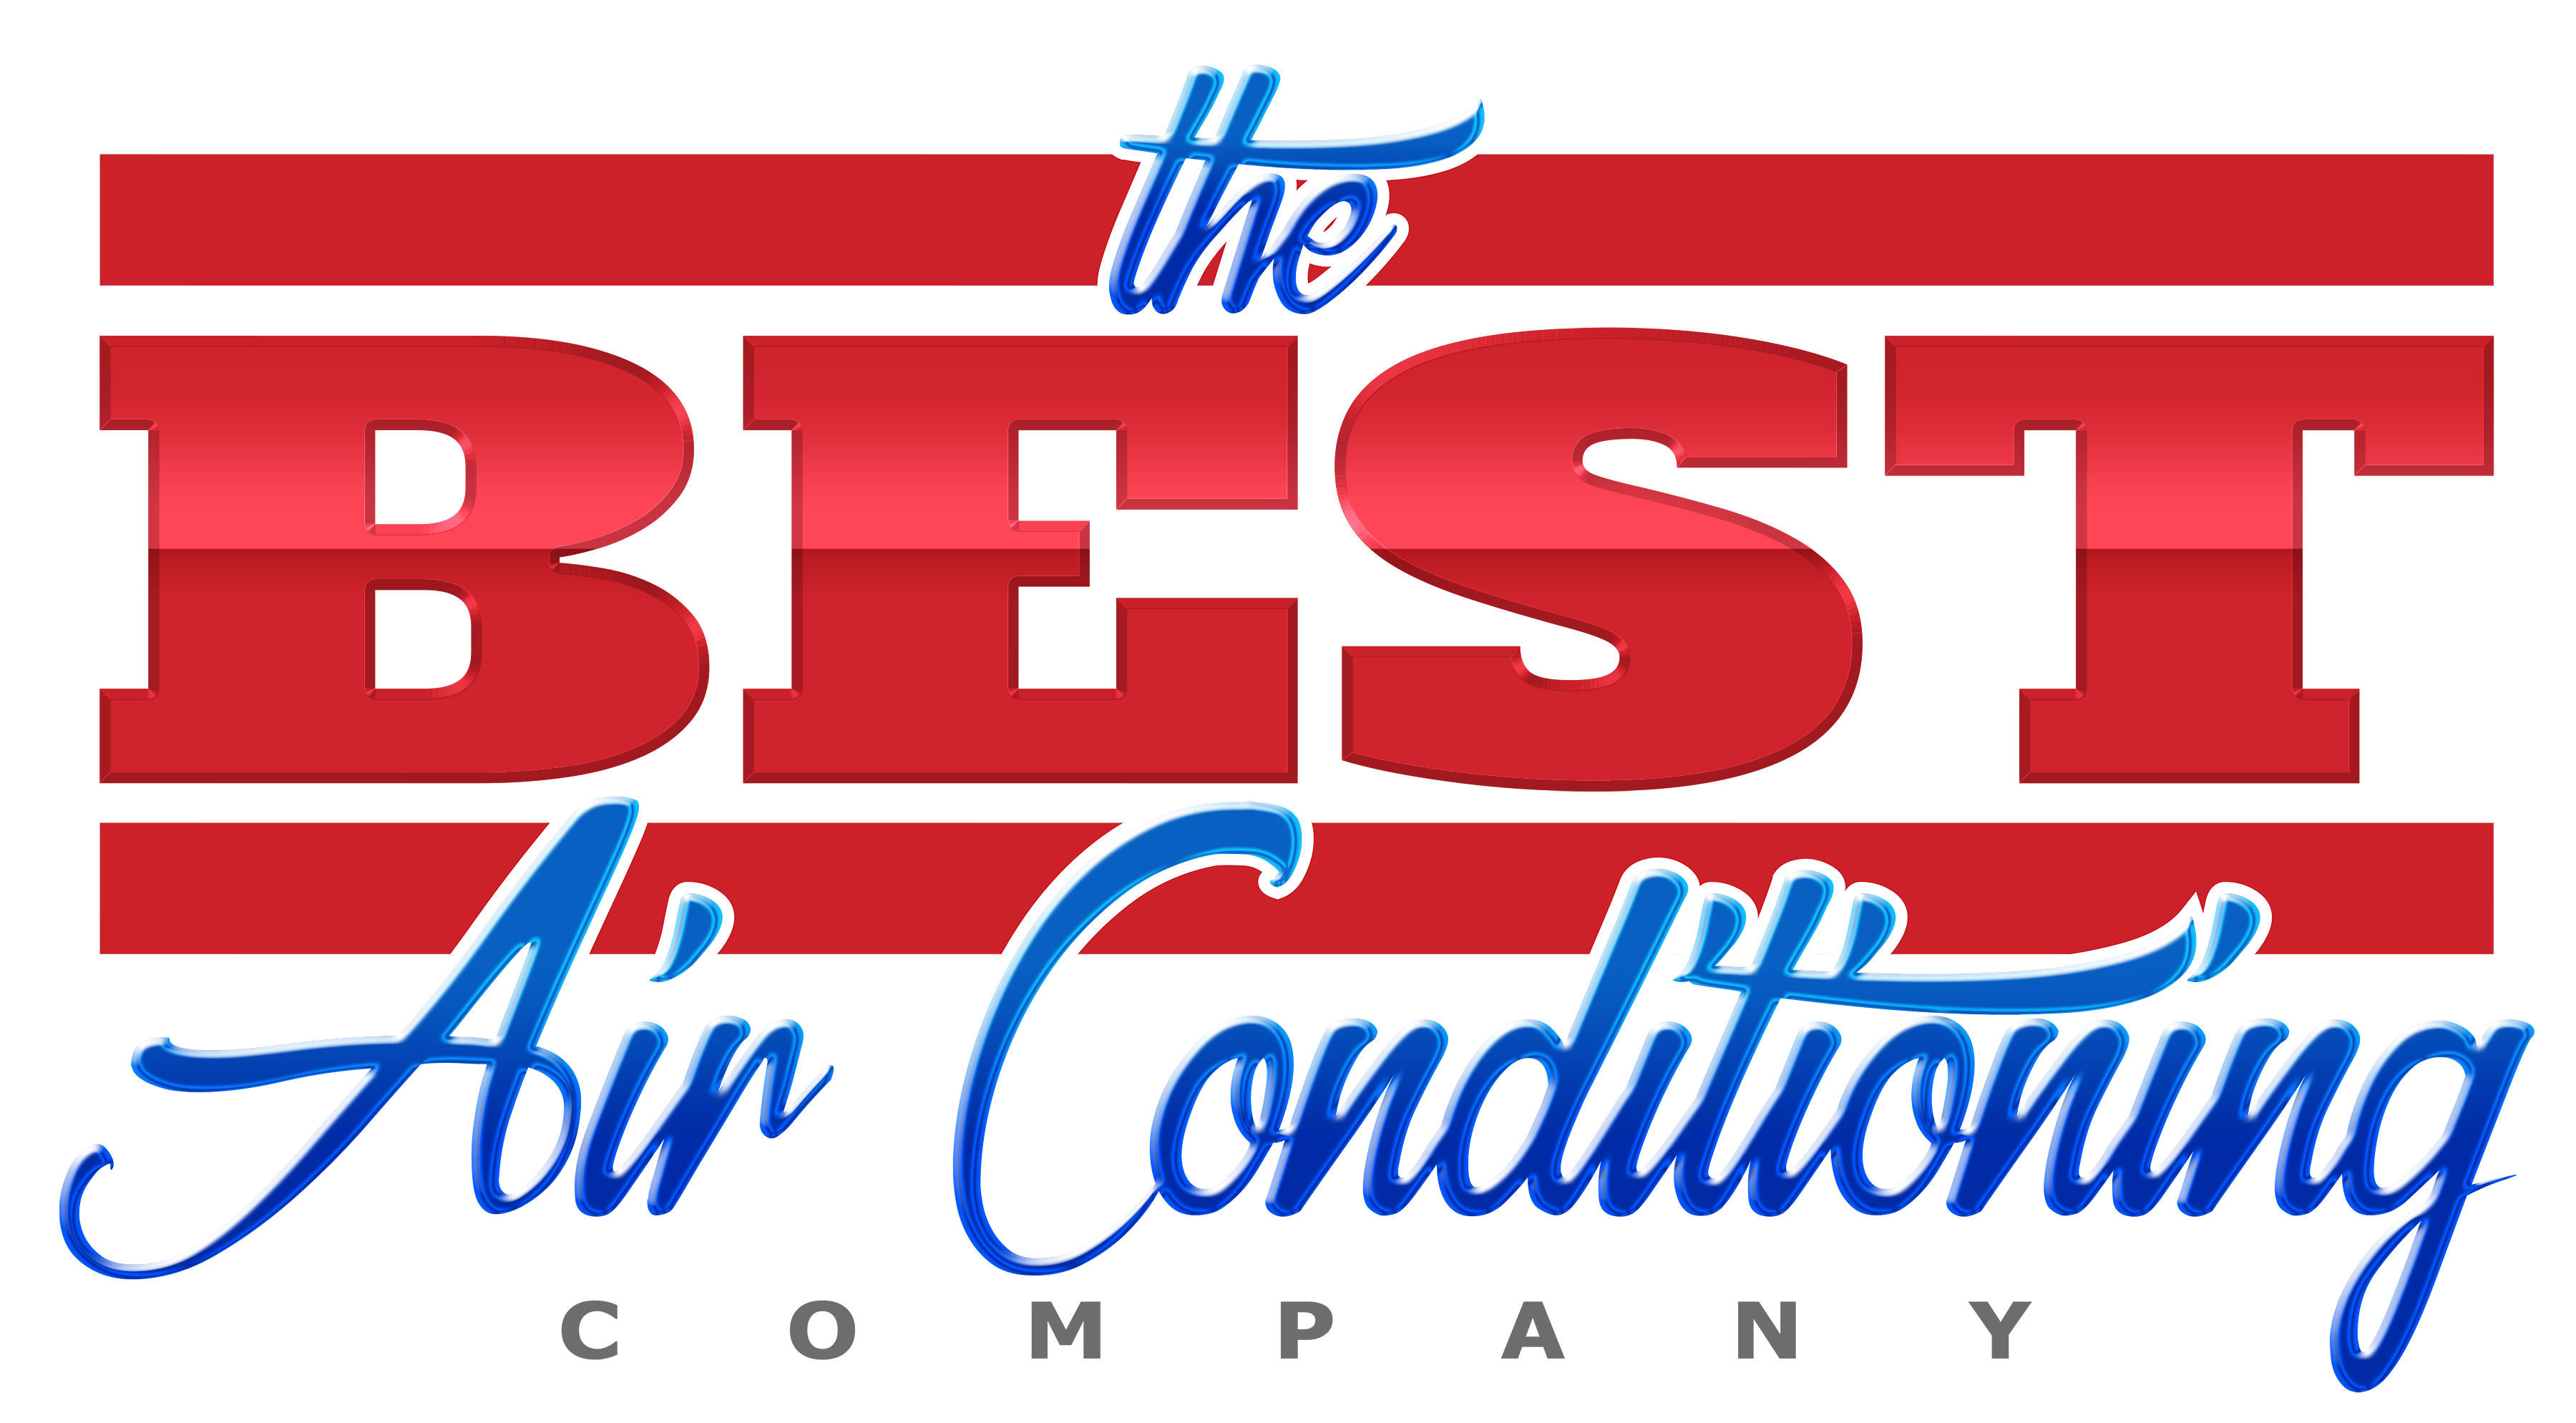 The Best Air Conditioning Co